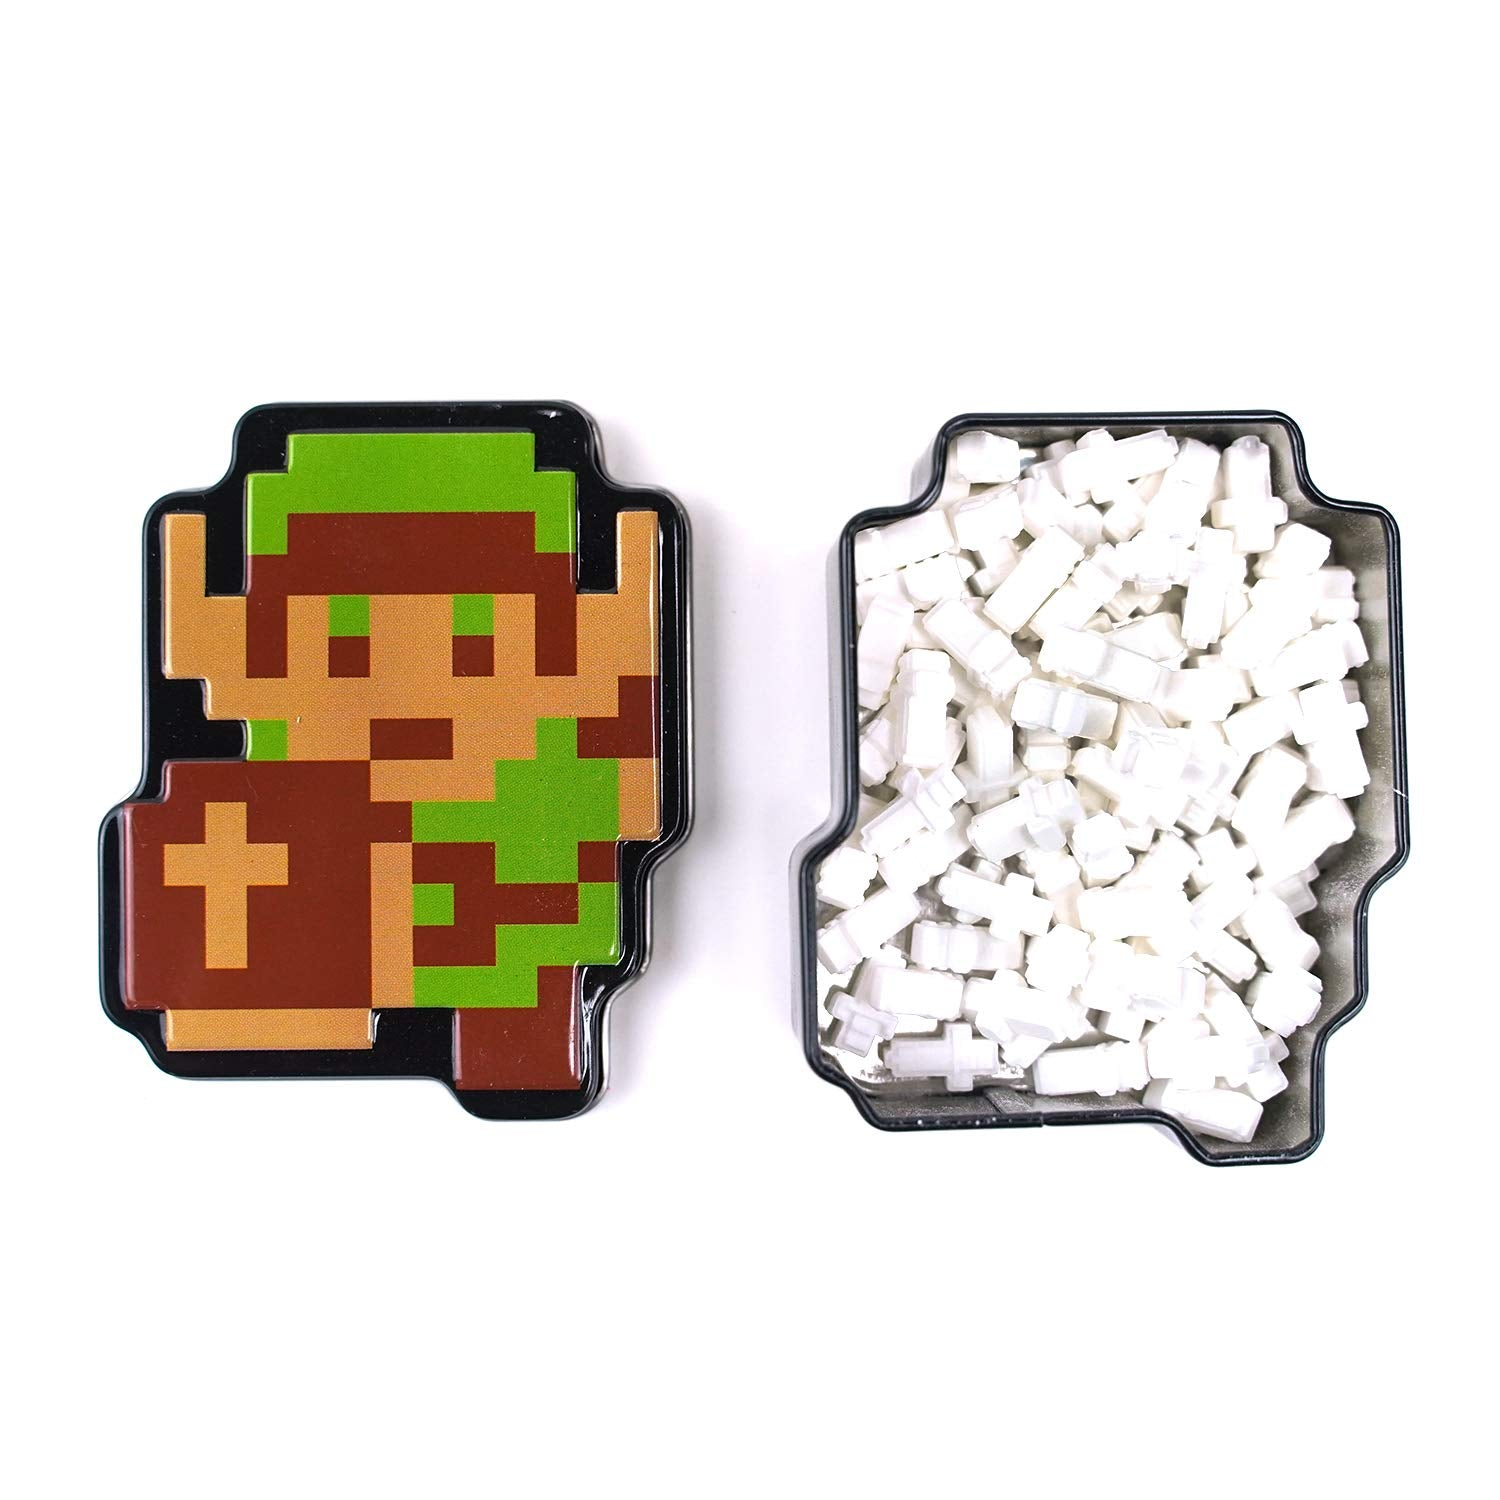 (2 Pack) Nintendo Legend of Zelda Retro Link Master Swords Tin Candy Orange Flavor Gift Stuffer with 2 GosuToys Stickers